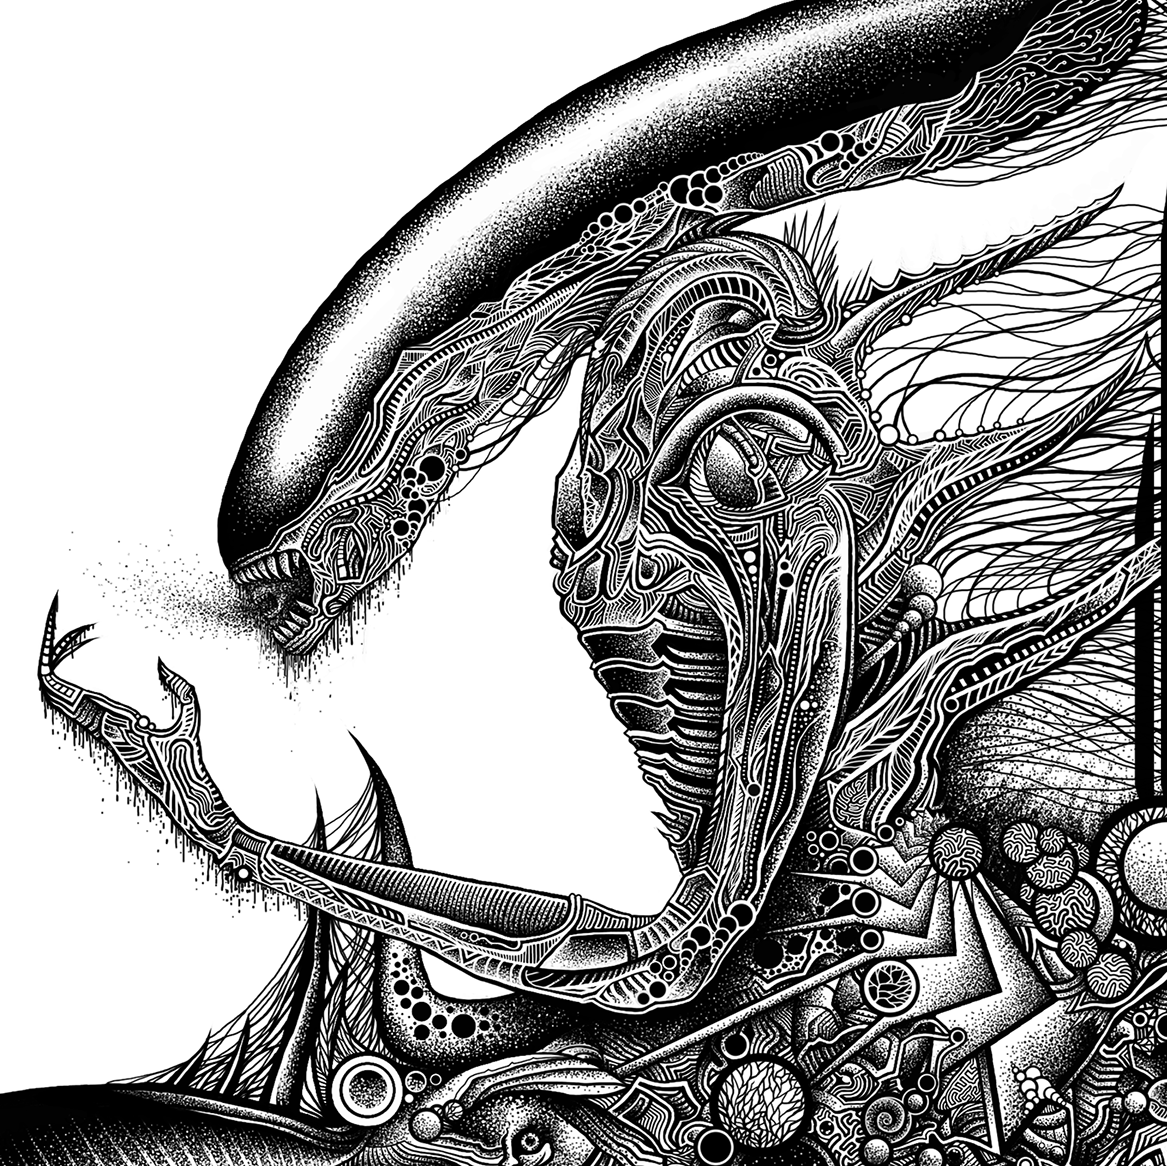 Giger, detail top #art #design #2014 #illustration #blackandwhite #pen #searinglimb #surreal #lineart #draw #alien #fanart #giger